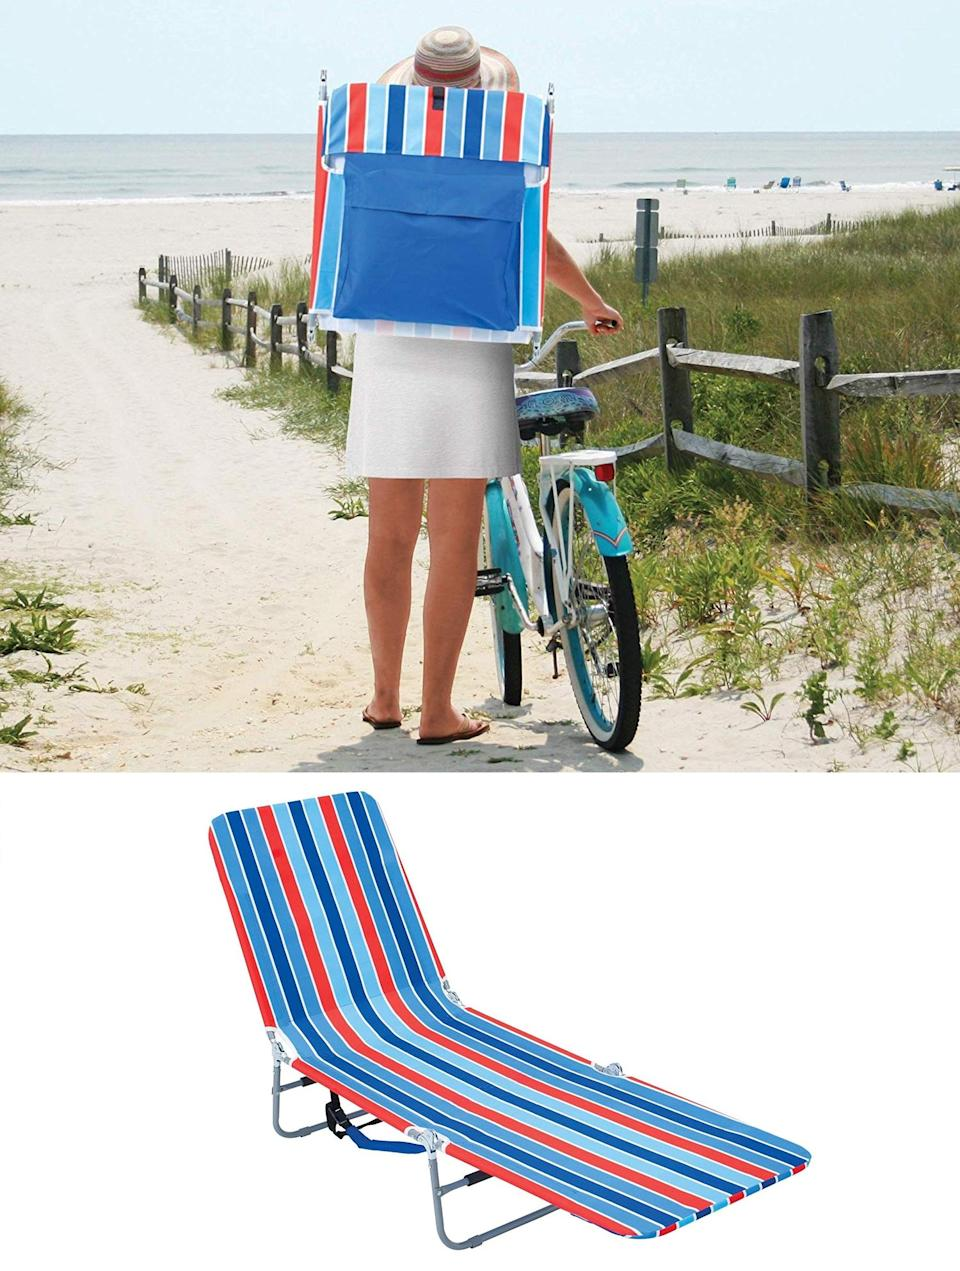 """<h3>Beach Backpack Lounge Chair</h3><br>This #1 New Release on Amazon is a fold-up and portable gift that moms will hail their functional summertime saviors.<br><br><strong>Rating: </strong>4 out of 5 stars, and 193 reviews<br><br><strong>A Satisfied Customer Review: </strong>""""Great for the beach! I brought a small neck pillow and it worked just fine. I love how portable and convenient this is! My favorite part of the chair is the pouch on the back. It's really very roomy! I was able to fit my neck pillow, magazines, beach towel, phone, and a drink in there. And the colors are very cute! Perfect chair for lounging at the beach. It was easy to position exactly how I wanted it to, and it dries off quickly after I sprayed the sand off when I was done.""""<br><br><strong>RIO Brands</strong> Portable Backpack Lounge Chair, $, available at <a href=""""https://www.amazon.com/dp/B010M67P40/ref=dp_prsubs_2"""" rel=""""nofollow noopener"""" target=""""_blank"""" data-ylk=""""slk:Amazon"""" class=""""link rapid-noclick-resp"""">Amazon</a>"""